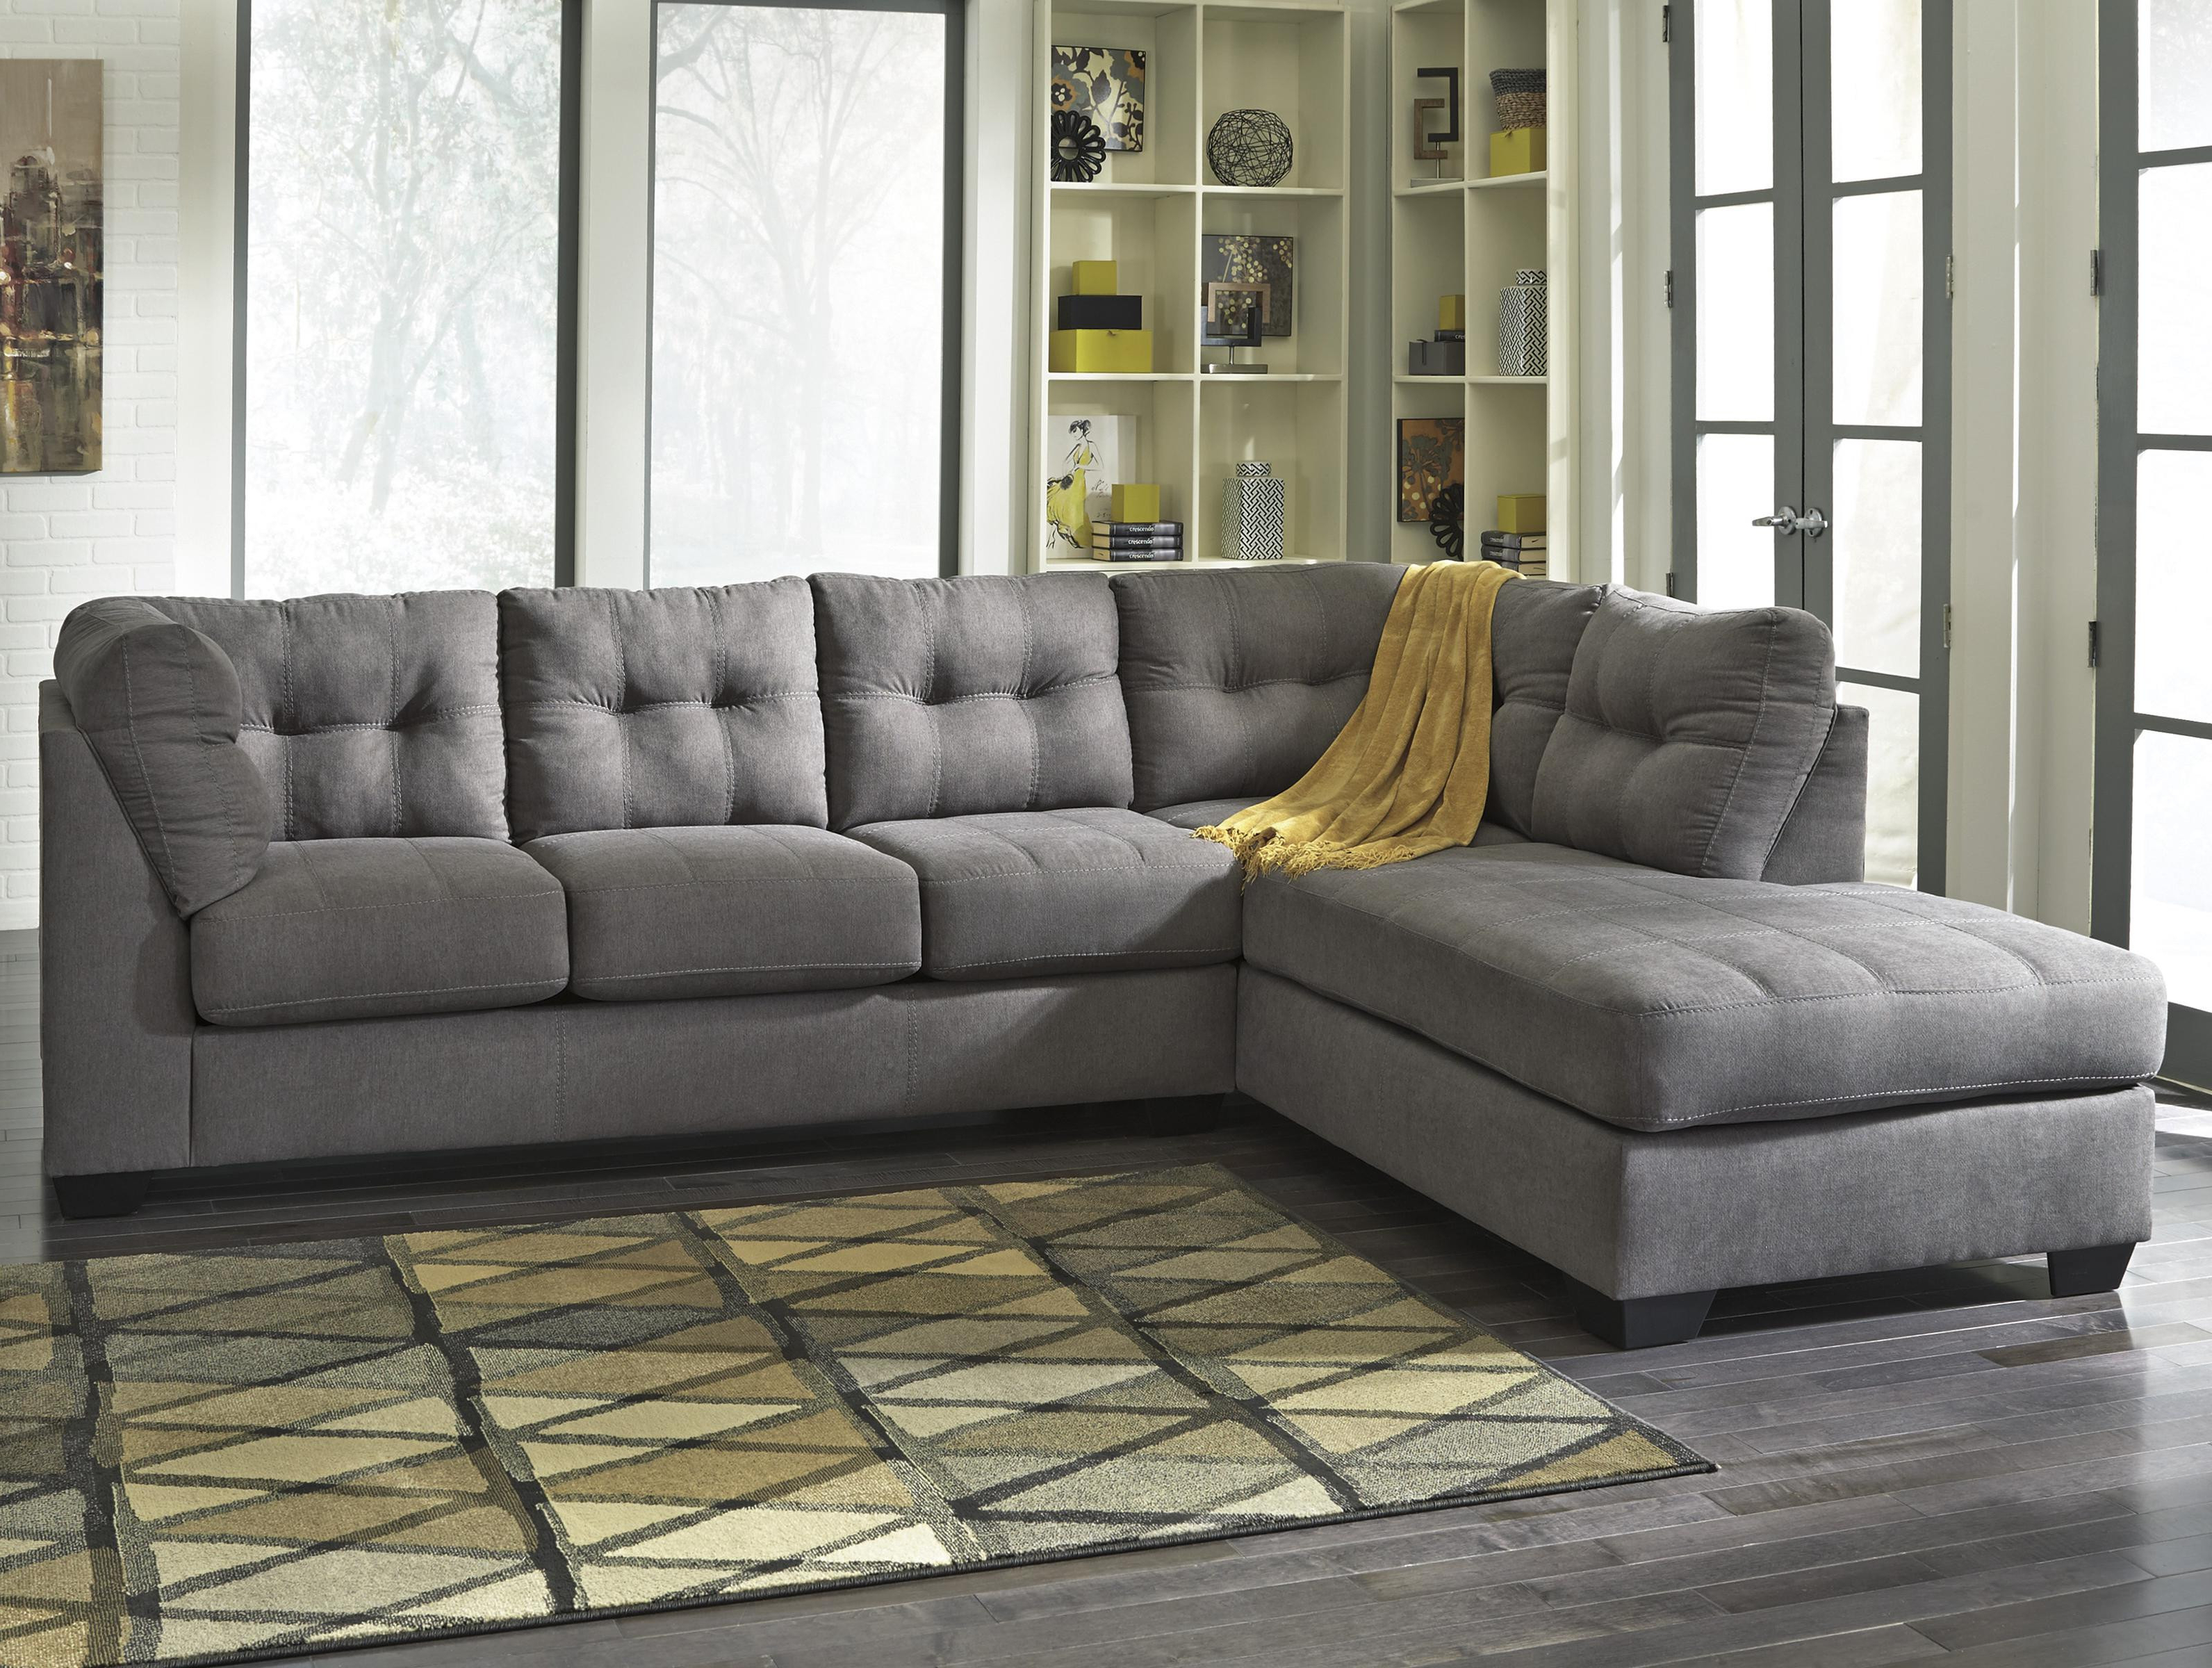 New 2 Piece Sectional With Chaise Lounge – Buildsimplehome In Favorite Jobs Oat 2 Piece Sectionals With Left Facing Chaise (View 13 of 20)